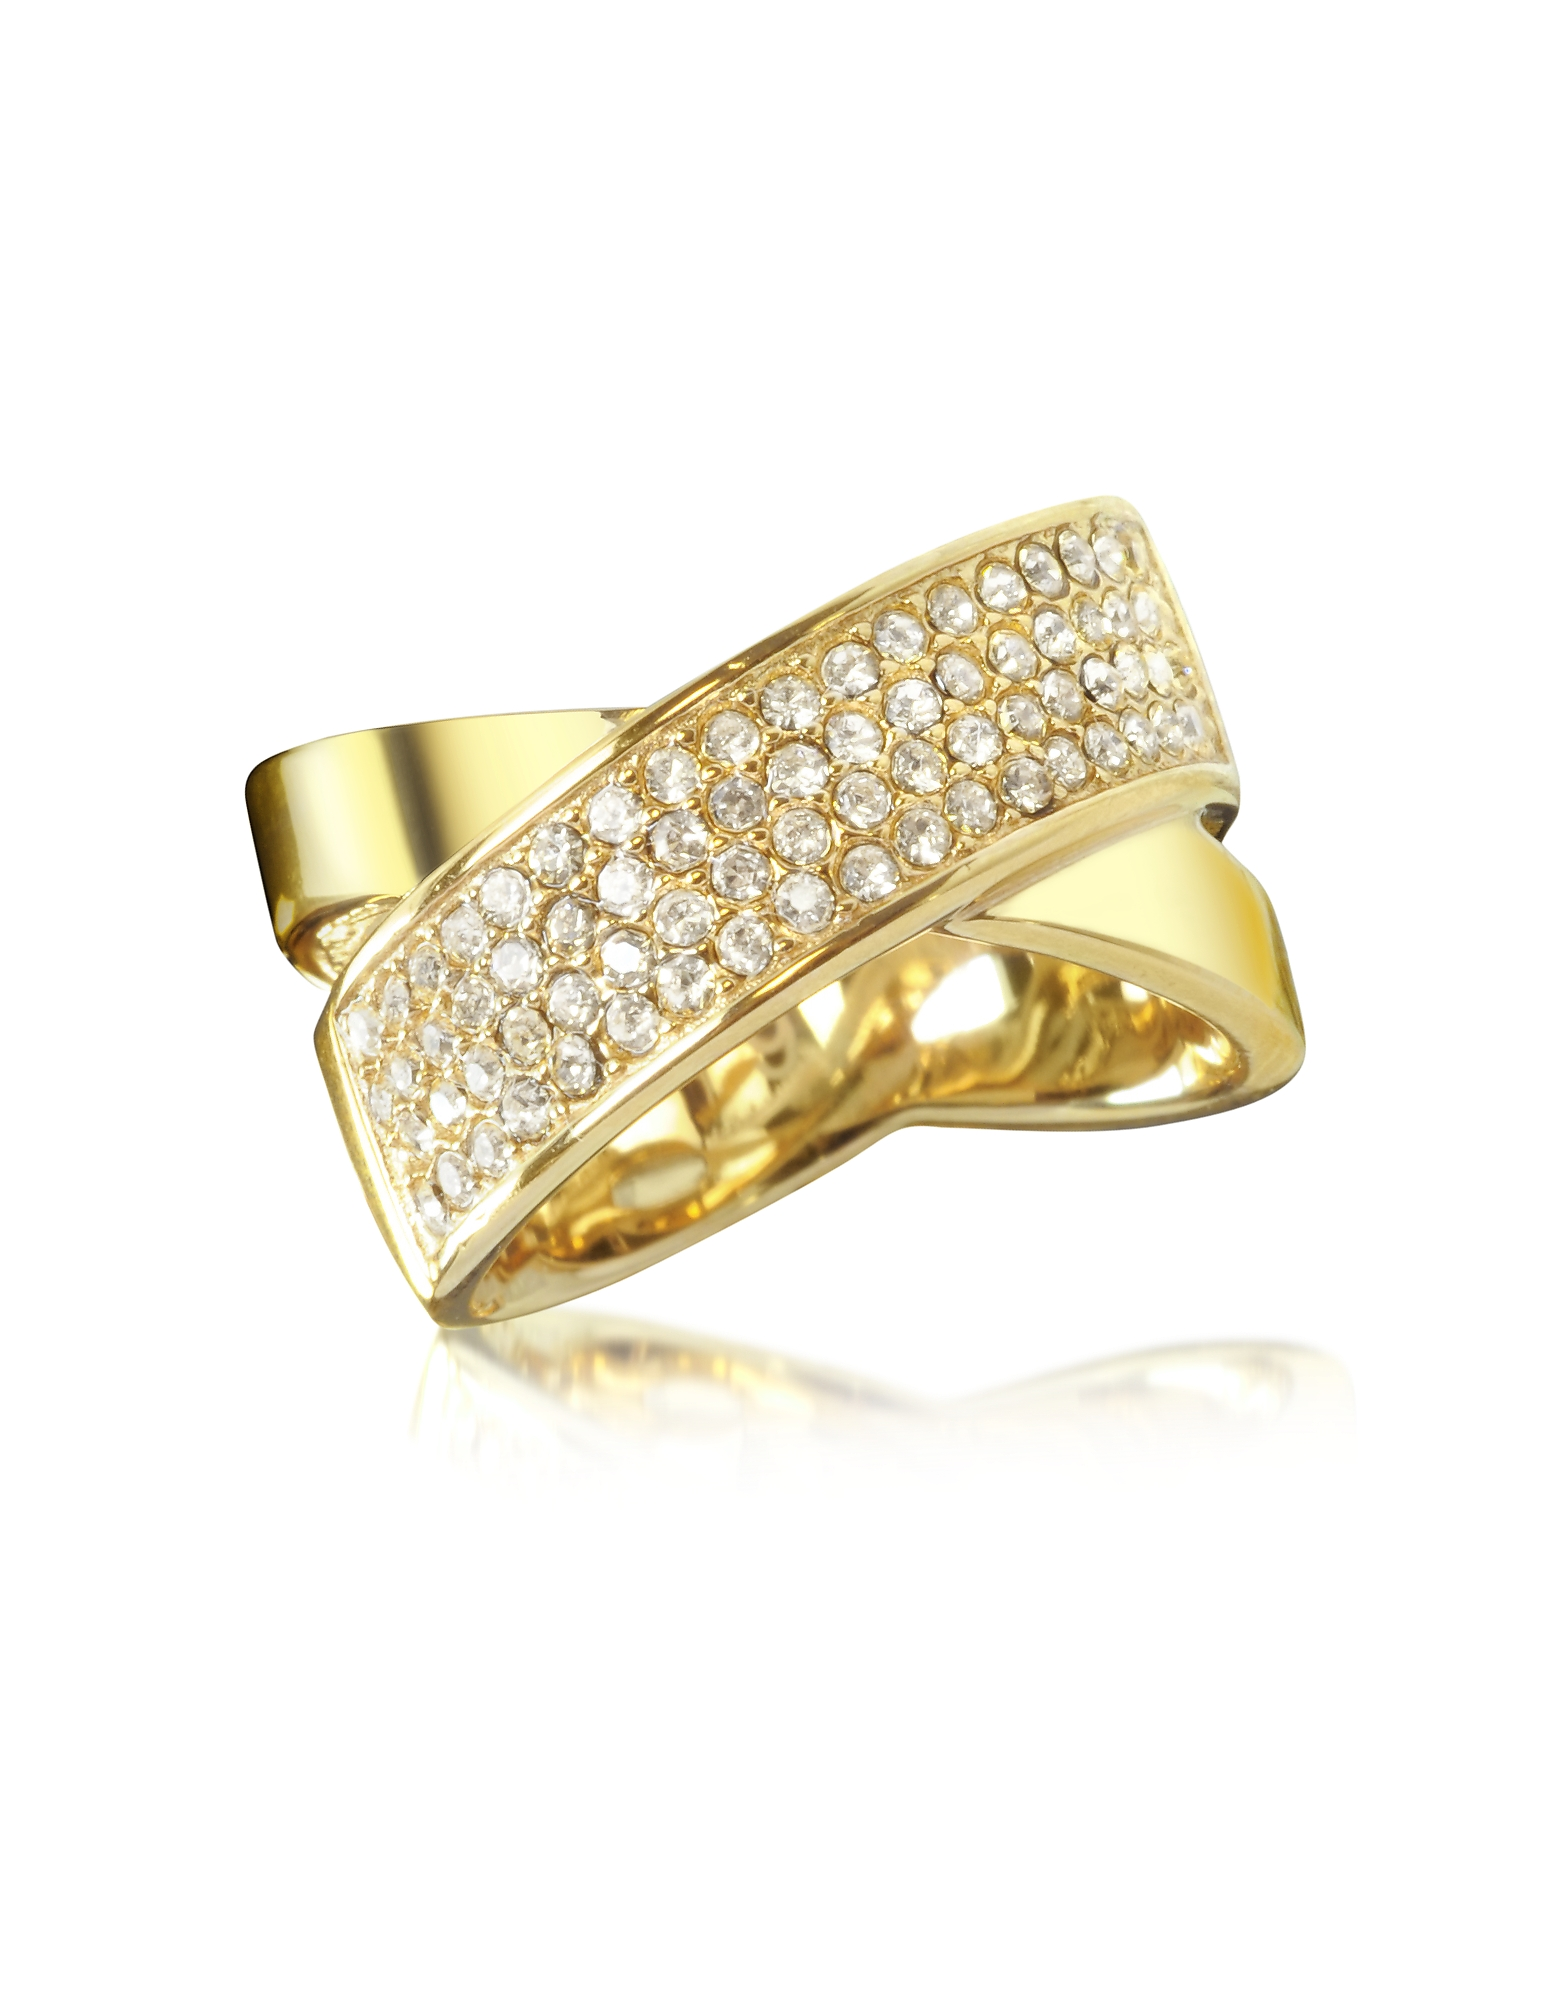 Michael Kors Rings, Golden Brass and Crystal Pave Women's Ring